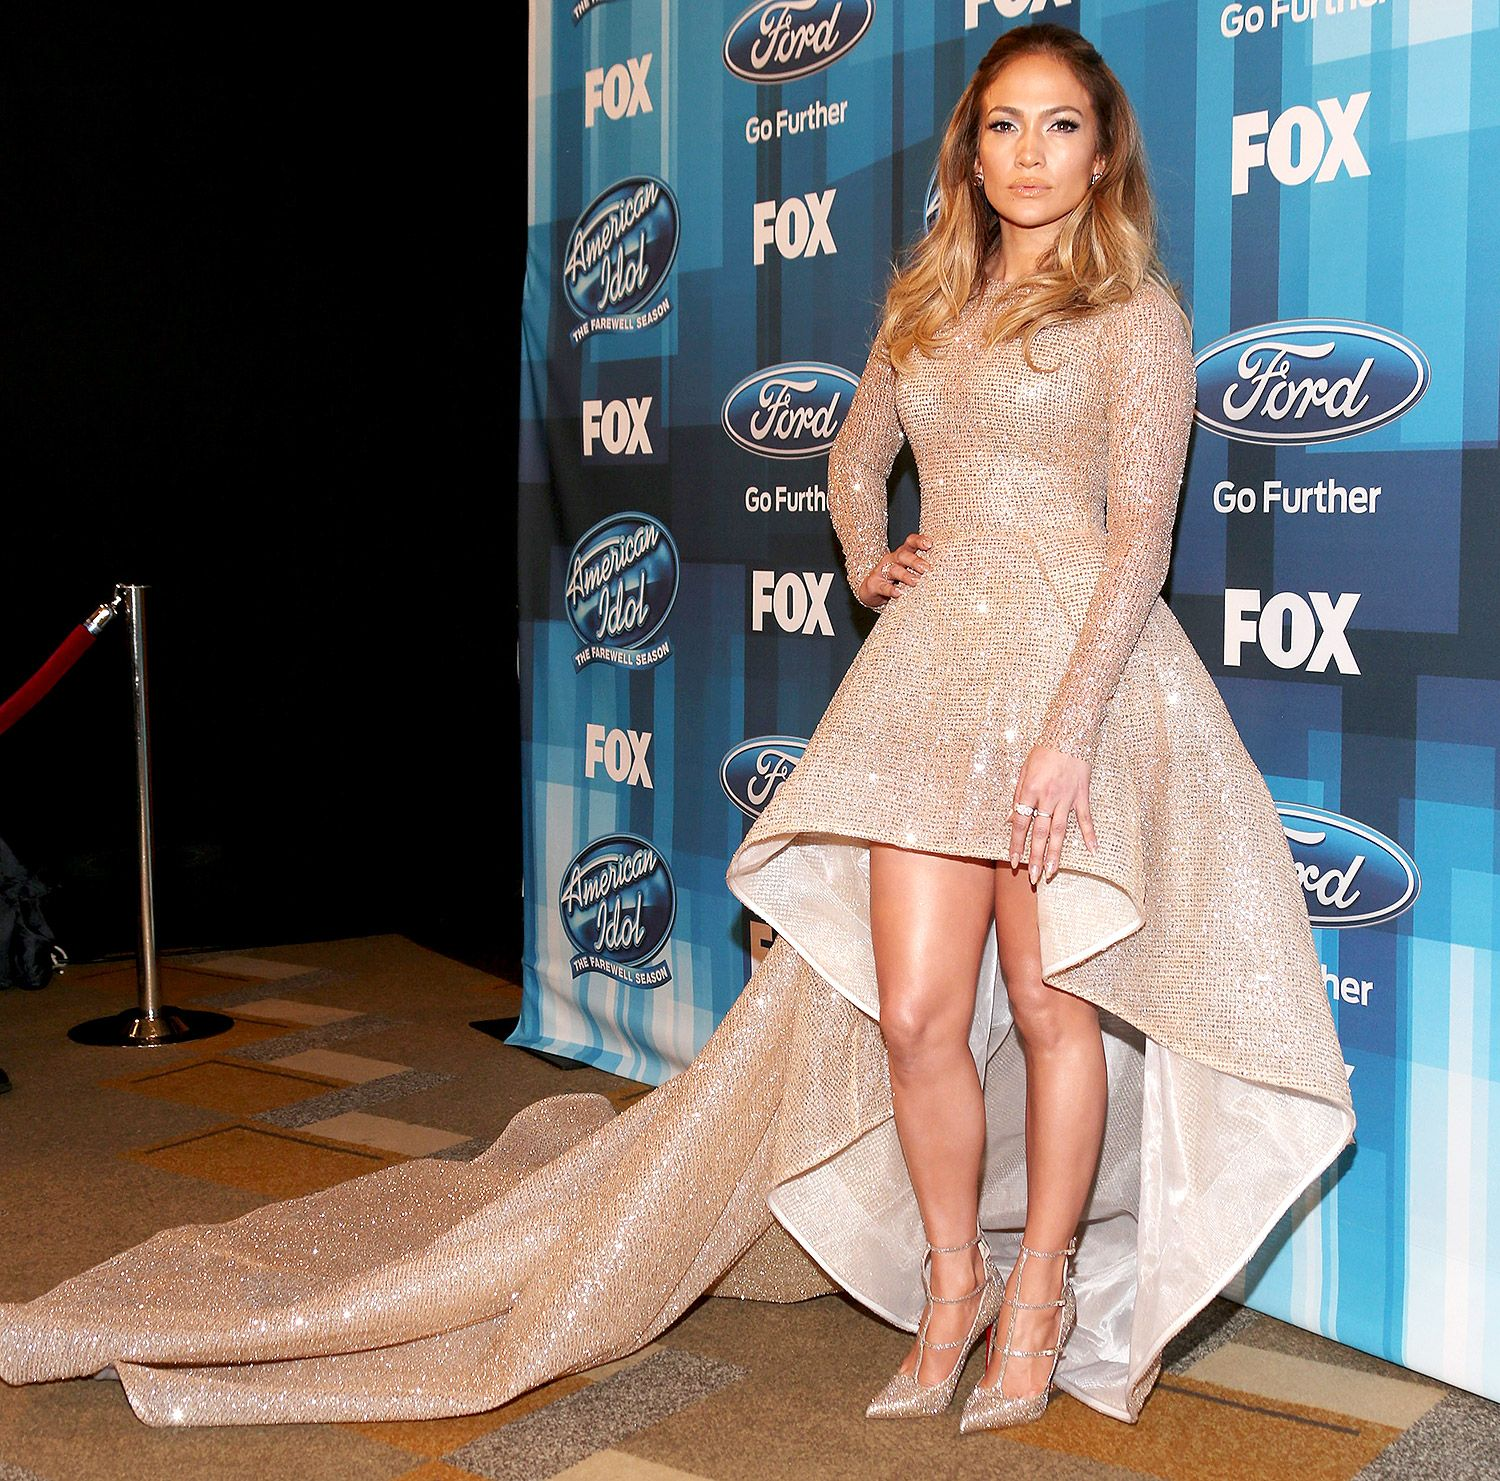 JENNIFER LOPEZ in a sequined champagne-colored Yas Couture high-low gown and Christian Louboutin heels